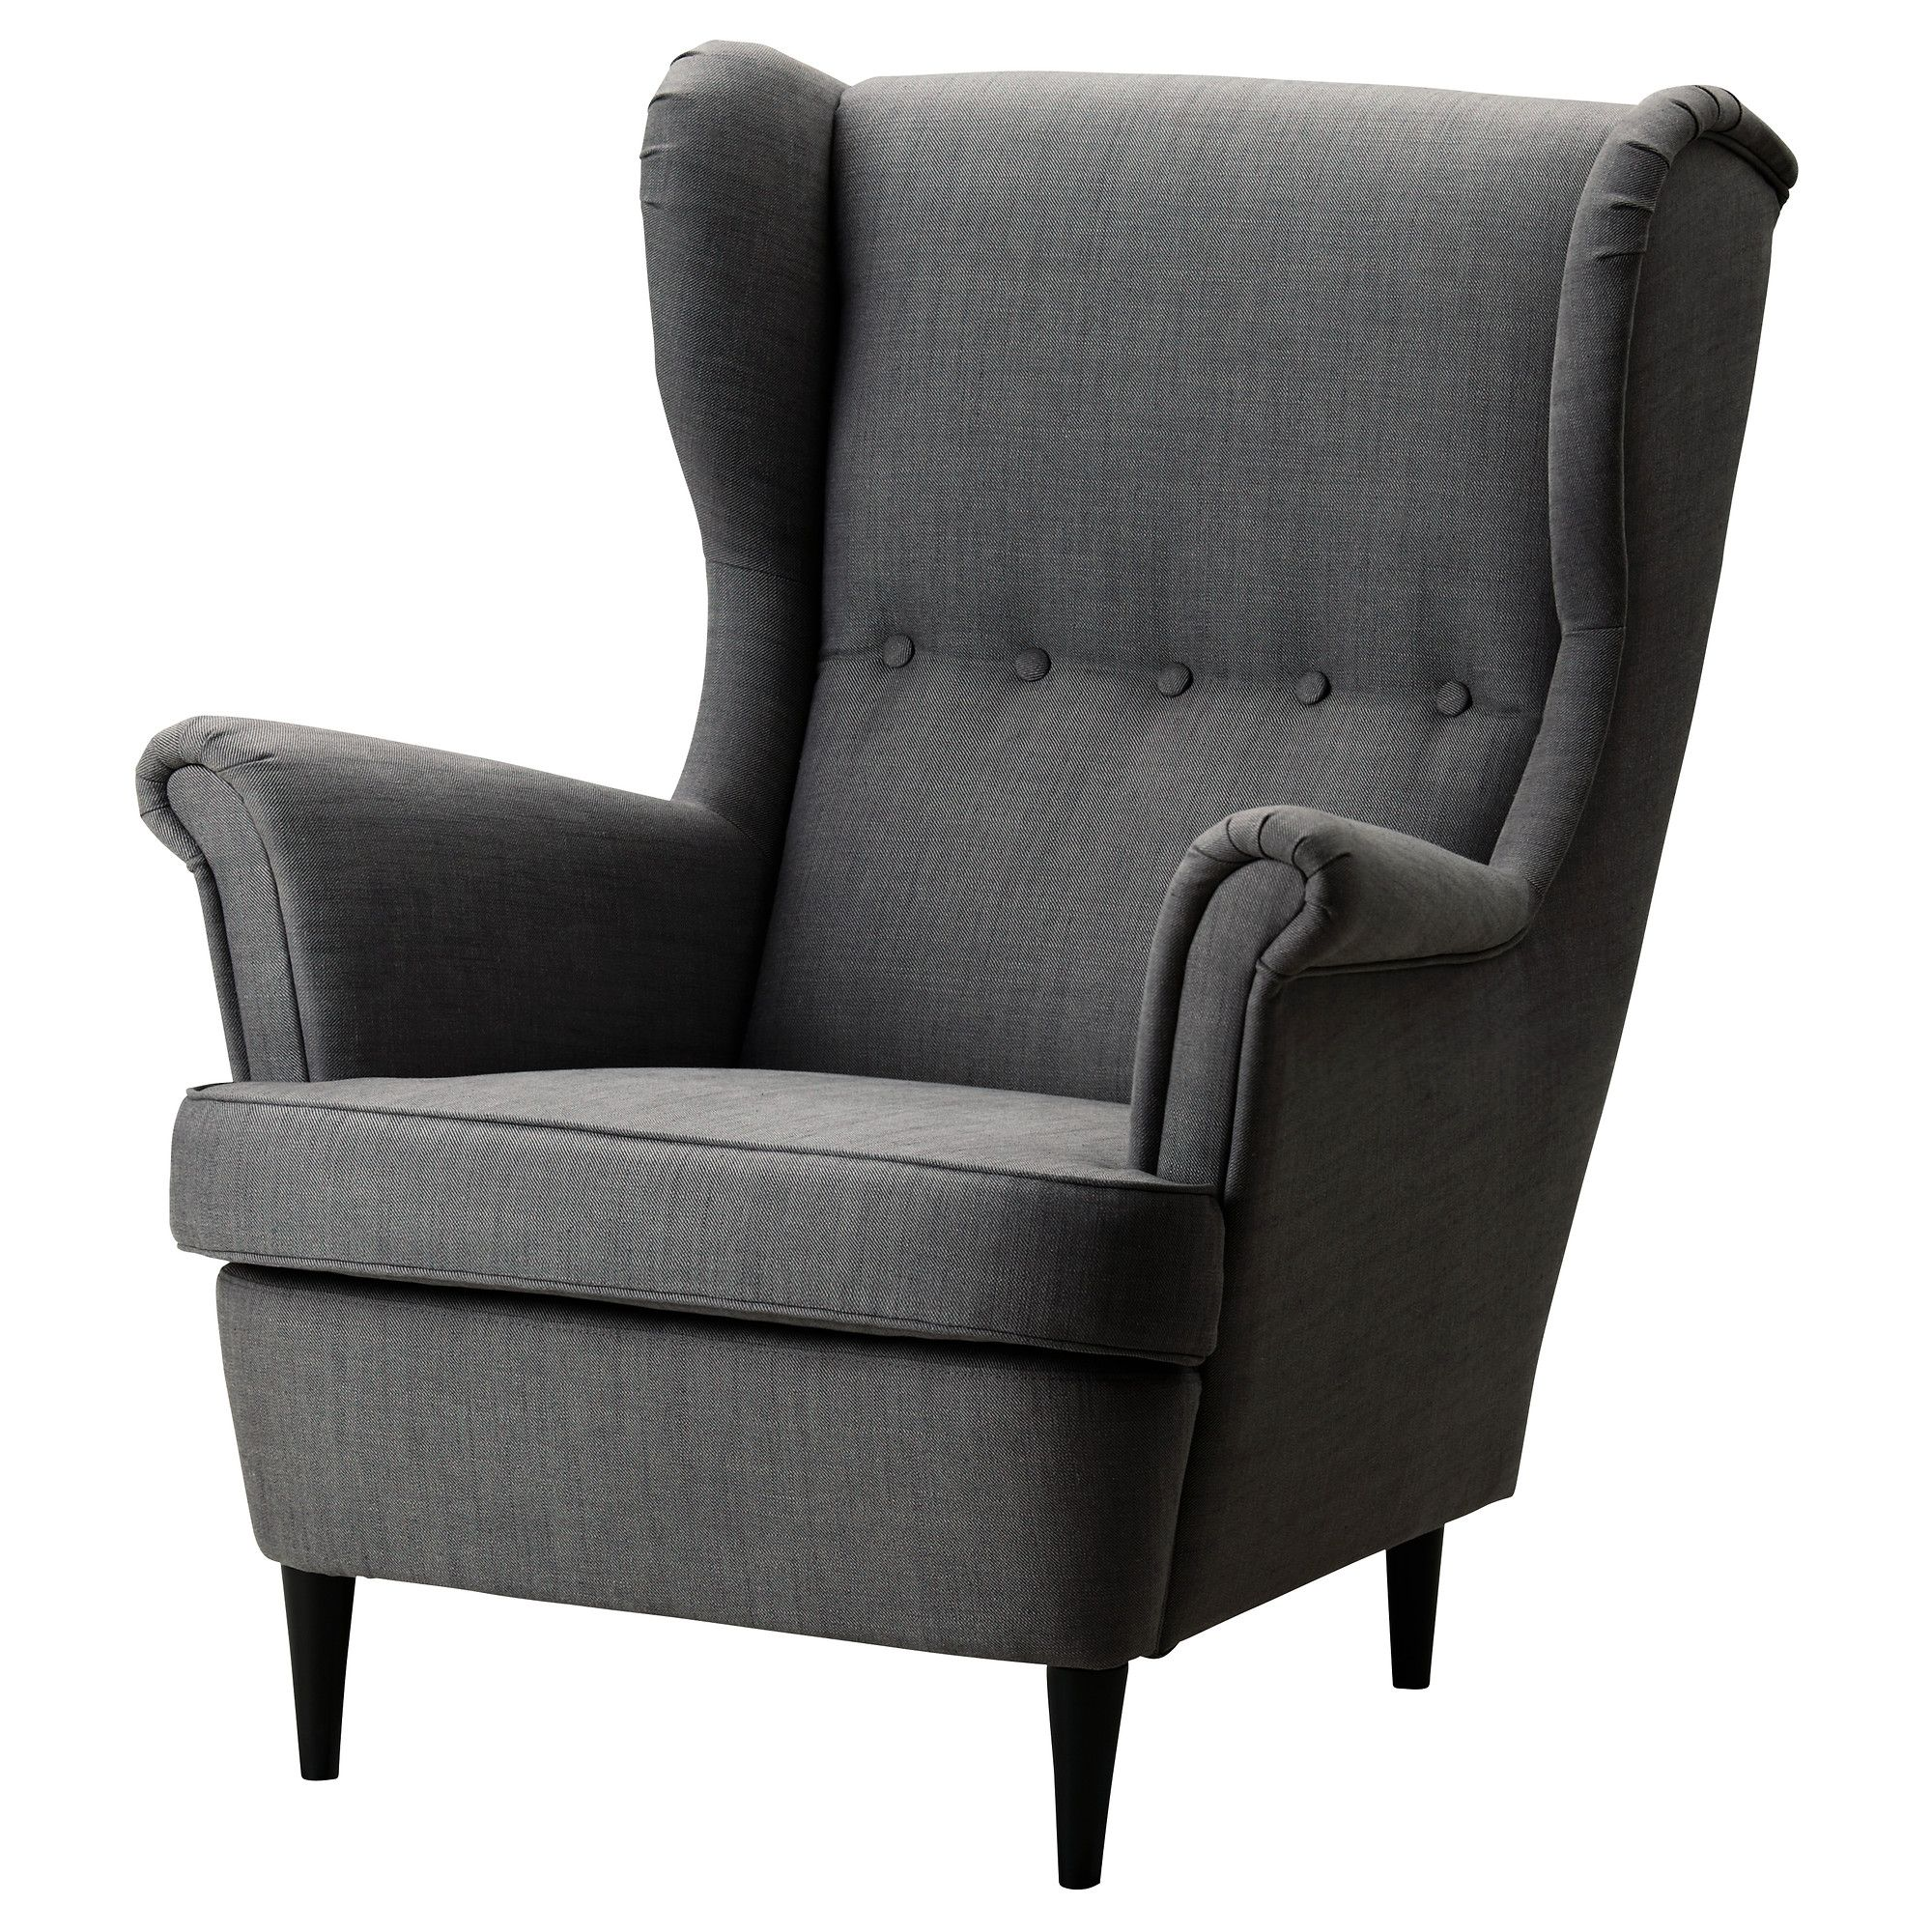 Ohrensessel Von Ikea Strandmon Wing Chair Svanby Gray Ikea Ikea Shopping